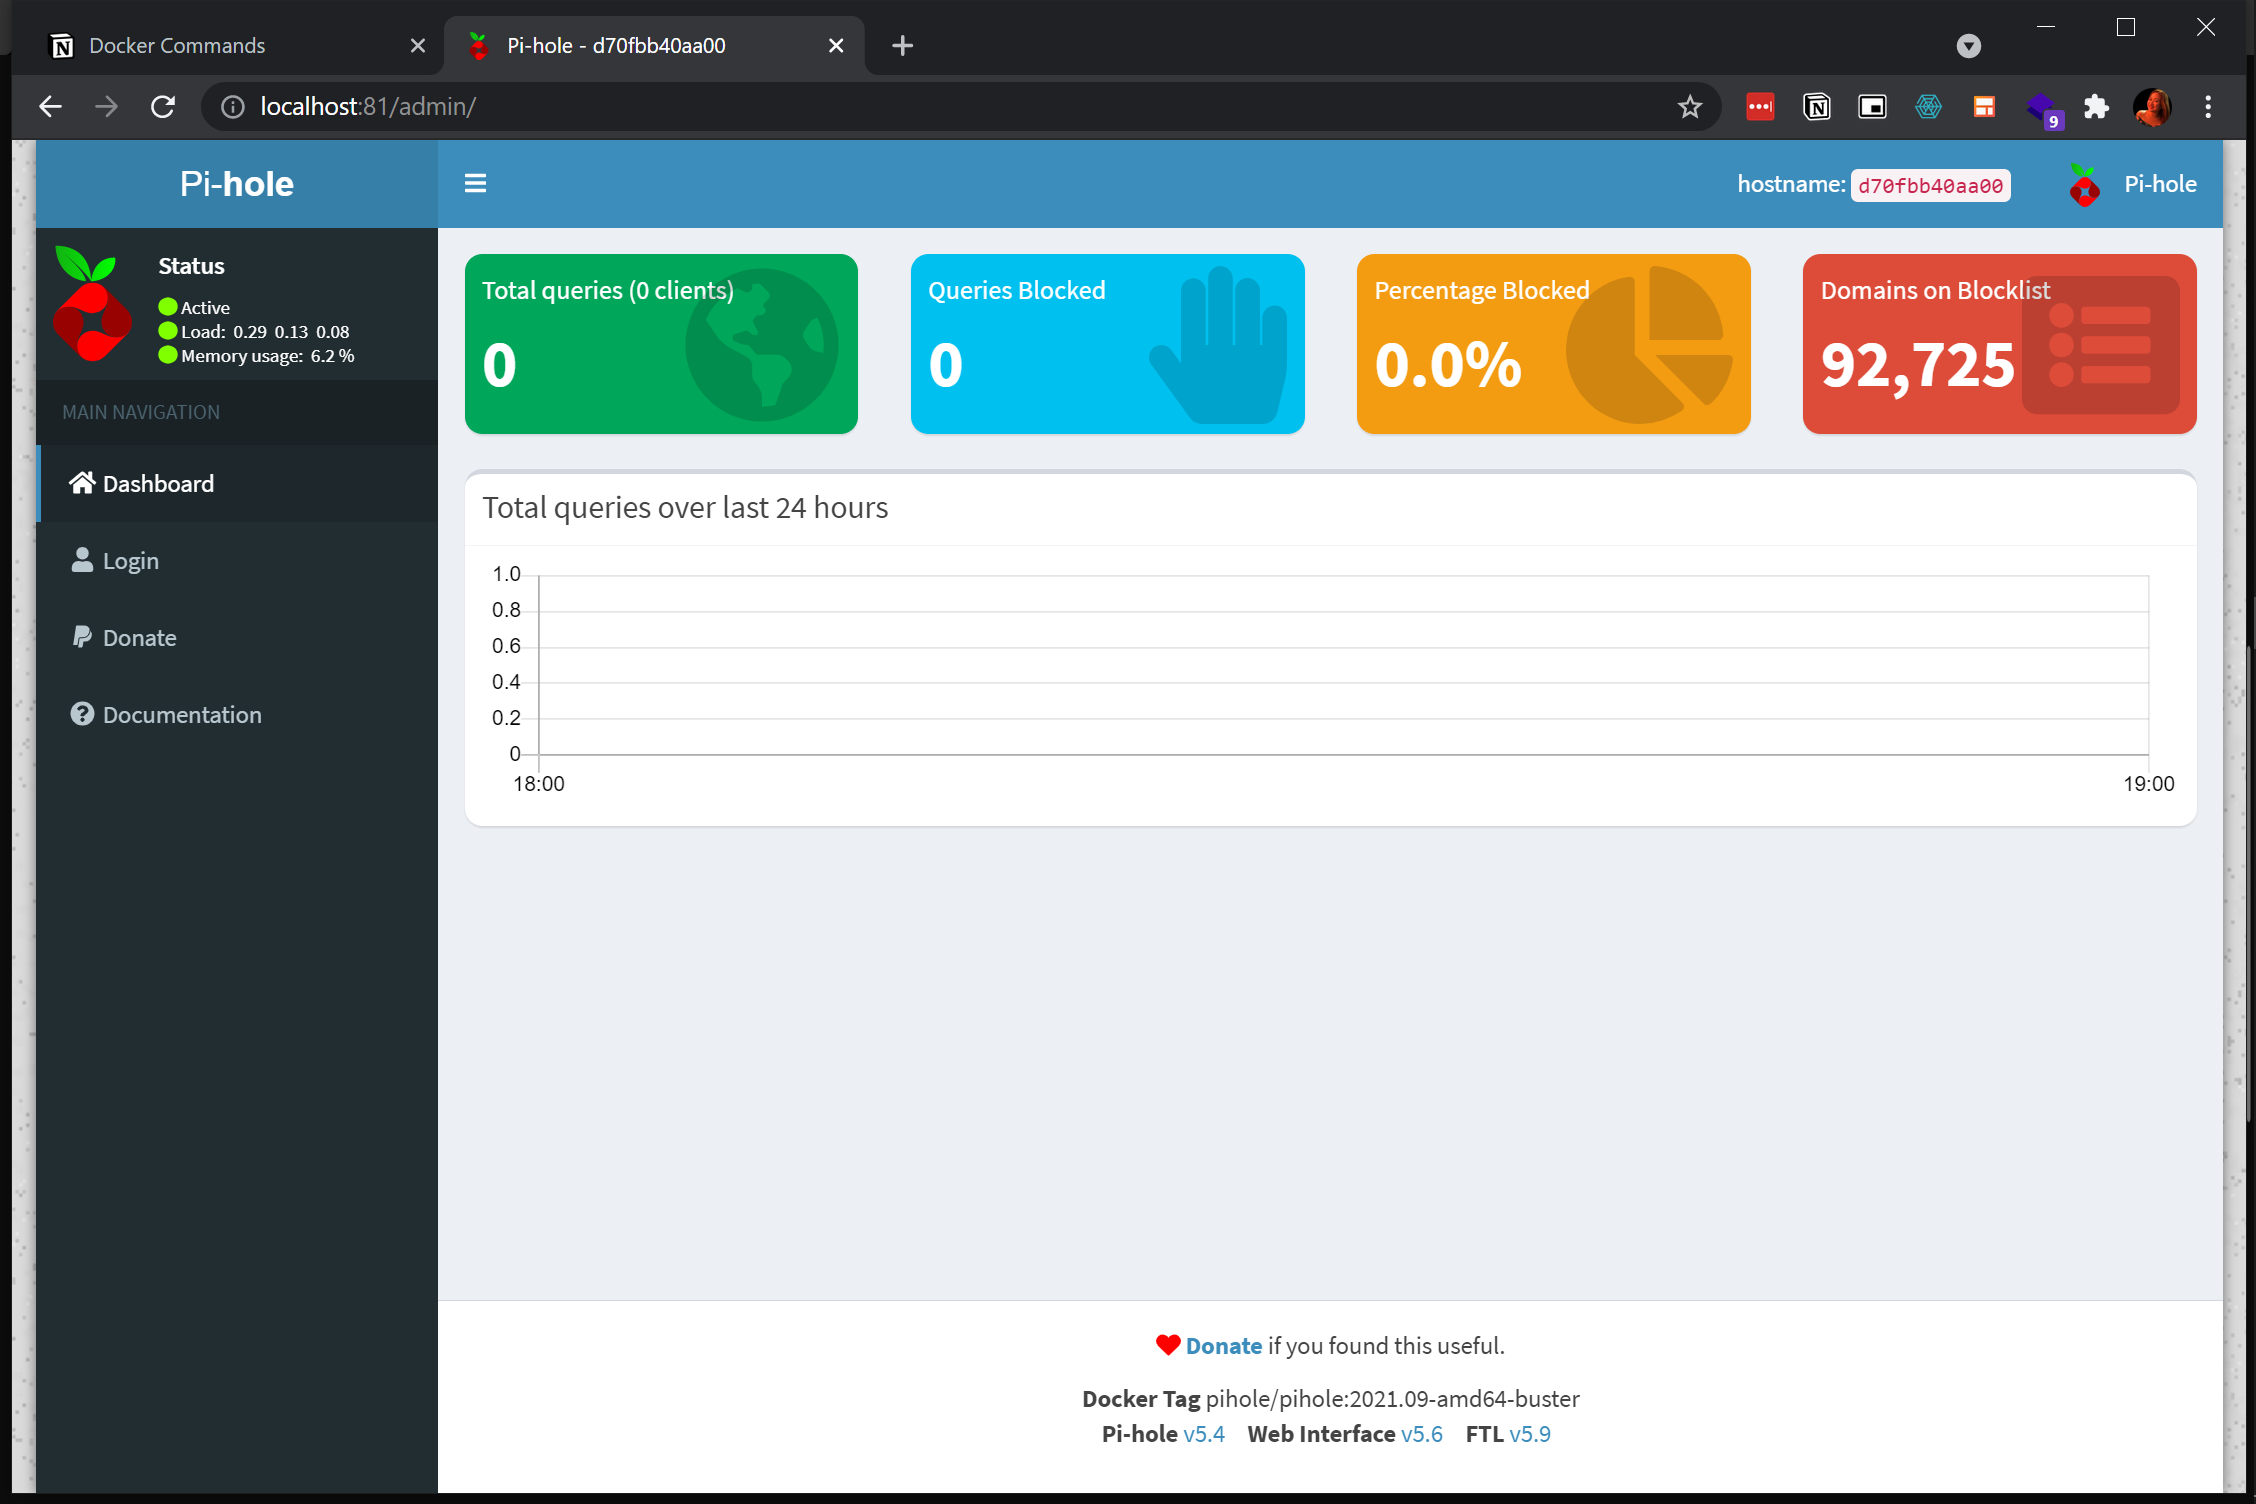 Viewing Pi-hole dashboard Default Page.